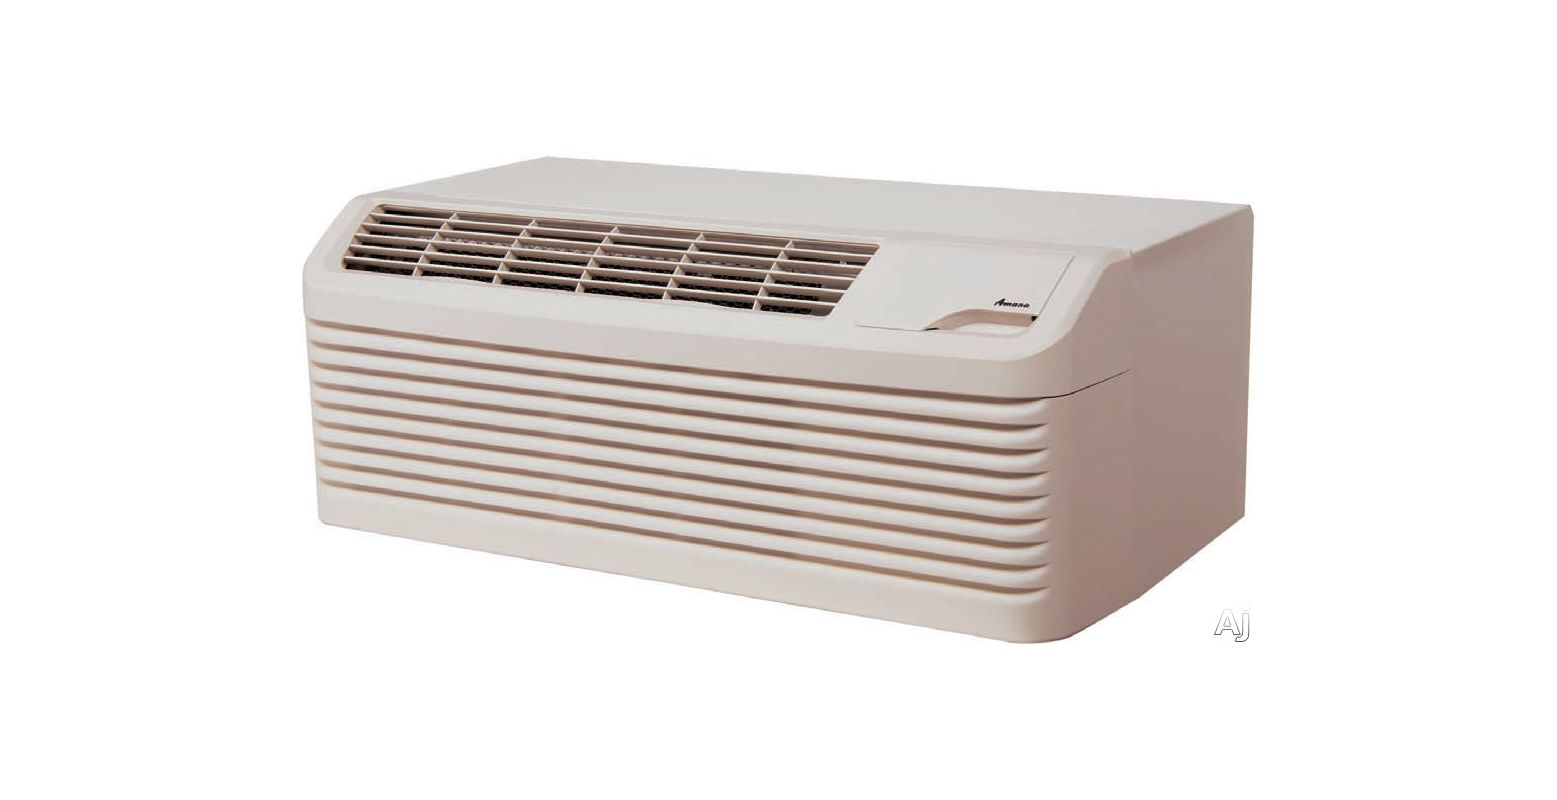 Amana PTC123G35AXXX 11,700 BTU Packaged Terminal Air Conditioner with 3.5 kW Ele photo